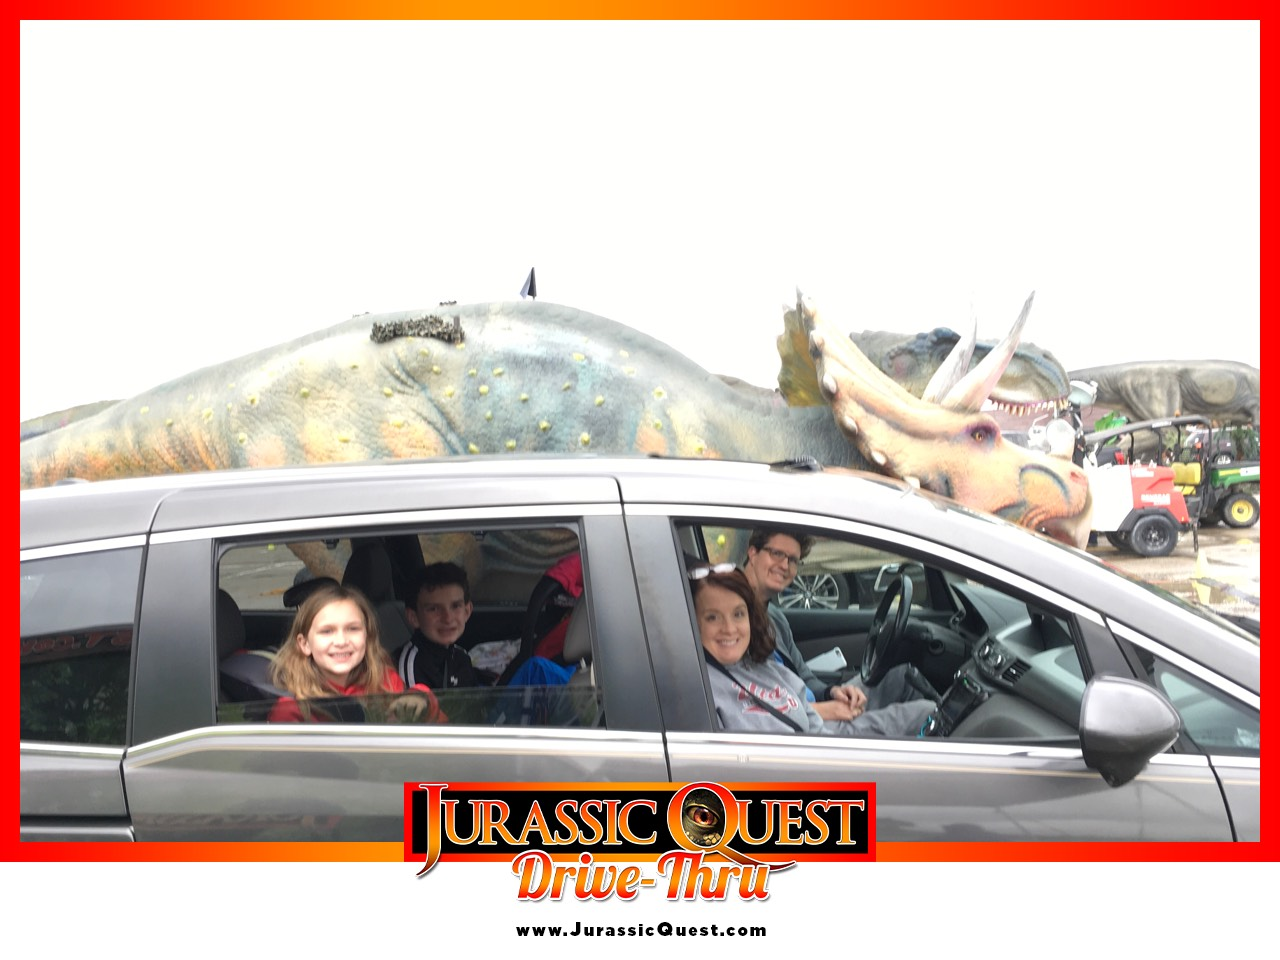 jurassic quest, life size dinosaurs, family fun, st louis activities, drive thru experience, family picture